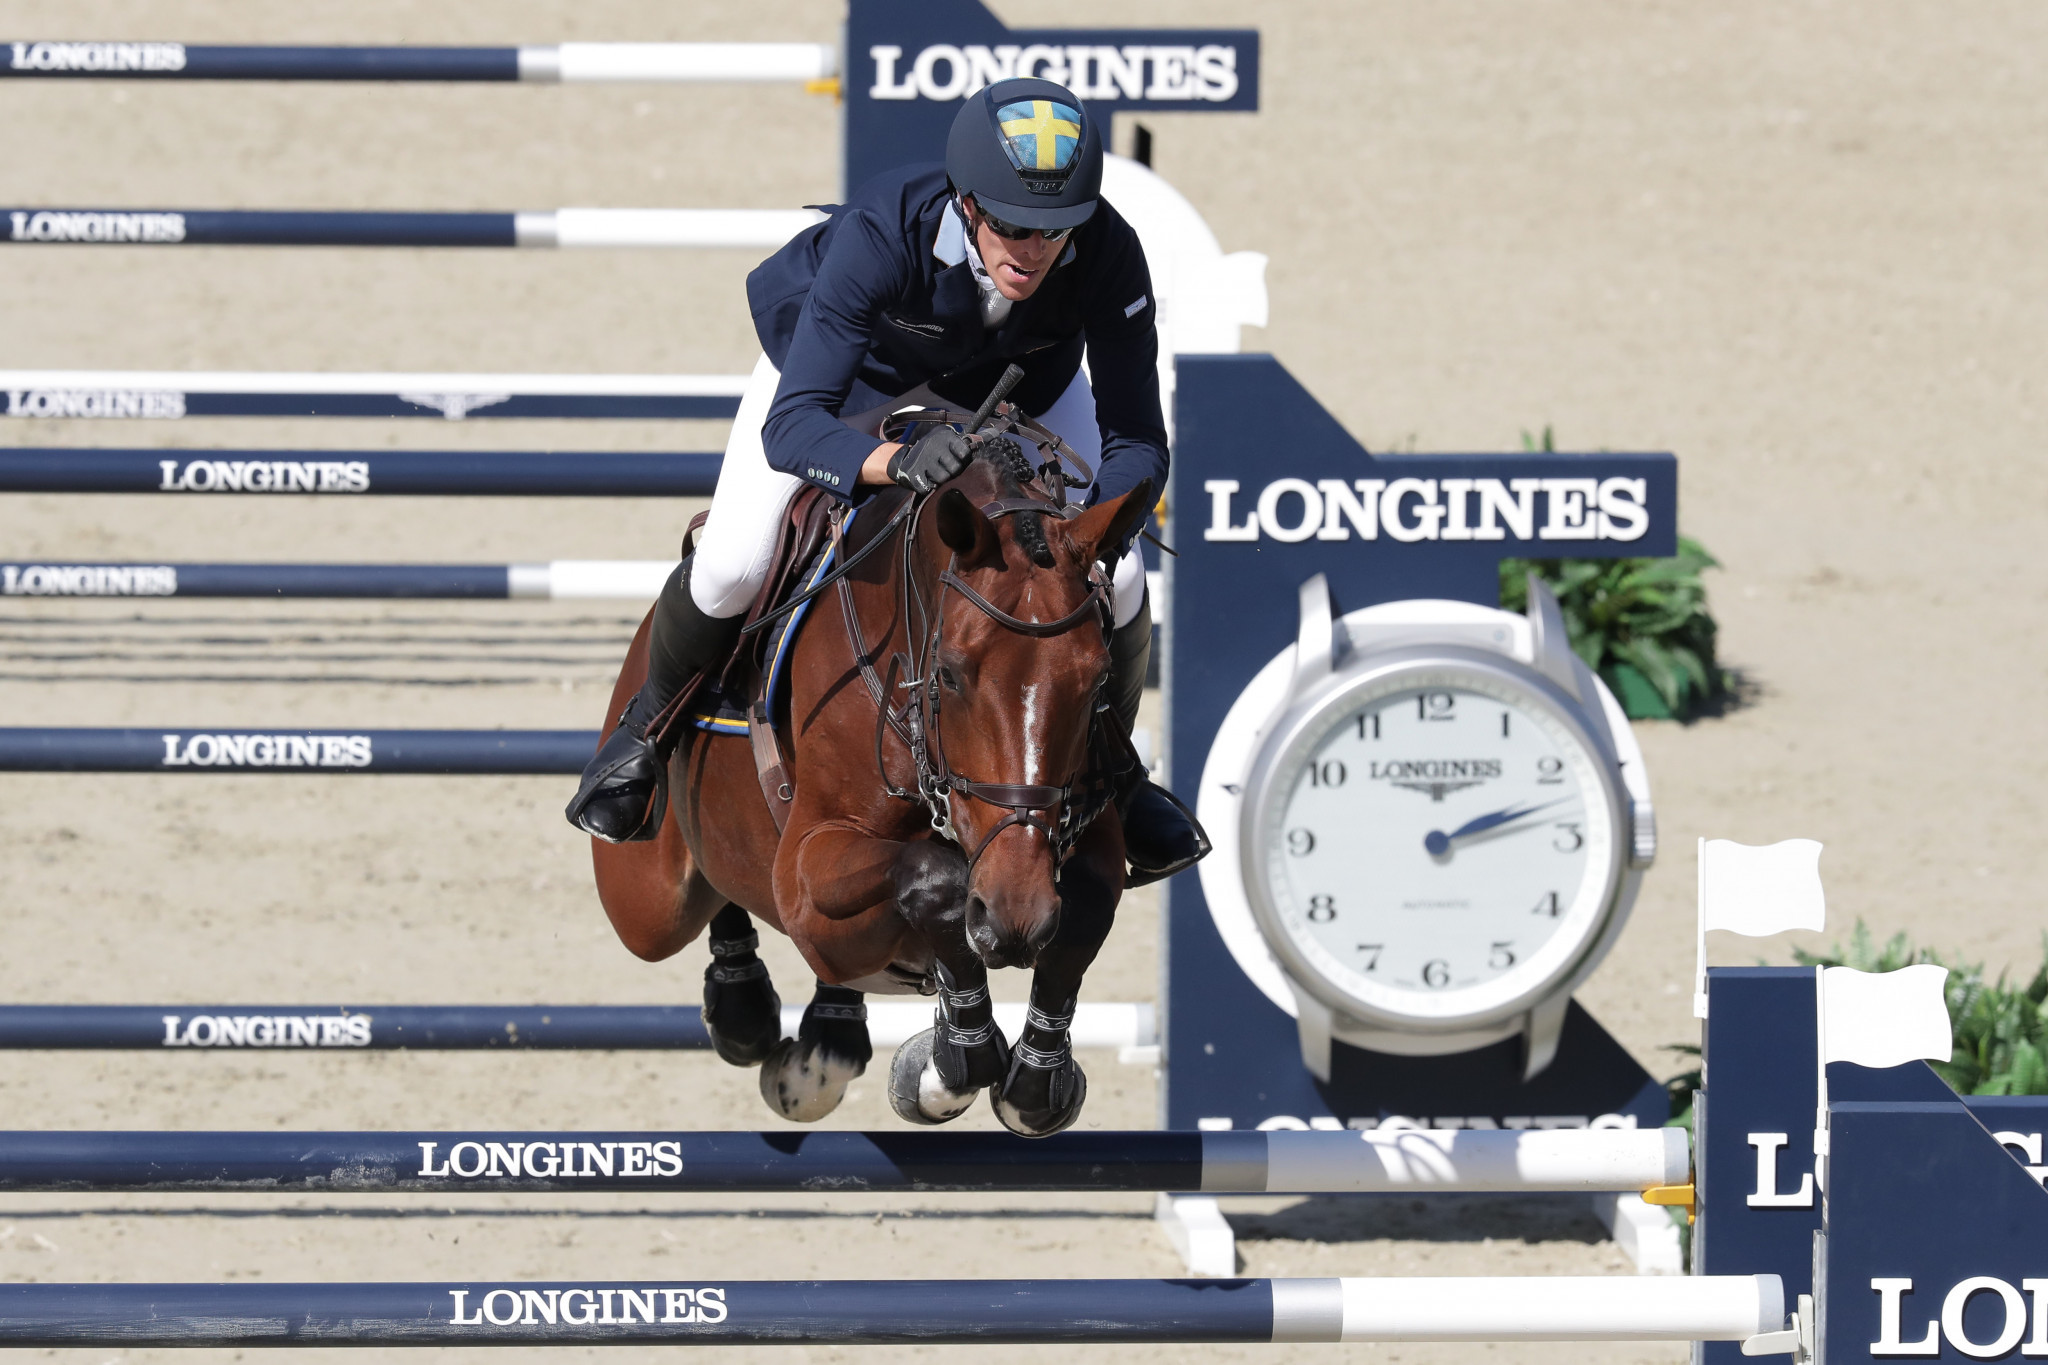 Olympic gold medallist wins as first week of Global Champions Tour action in Šamorín concludes